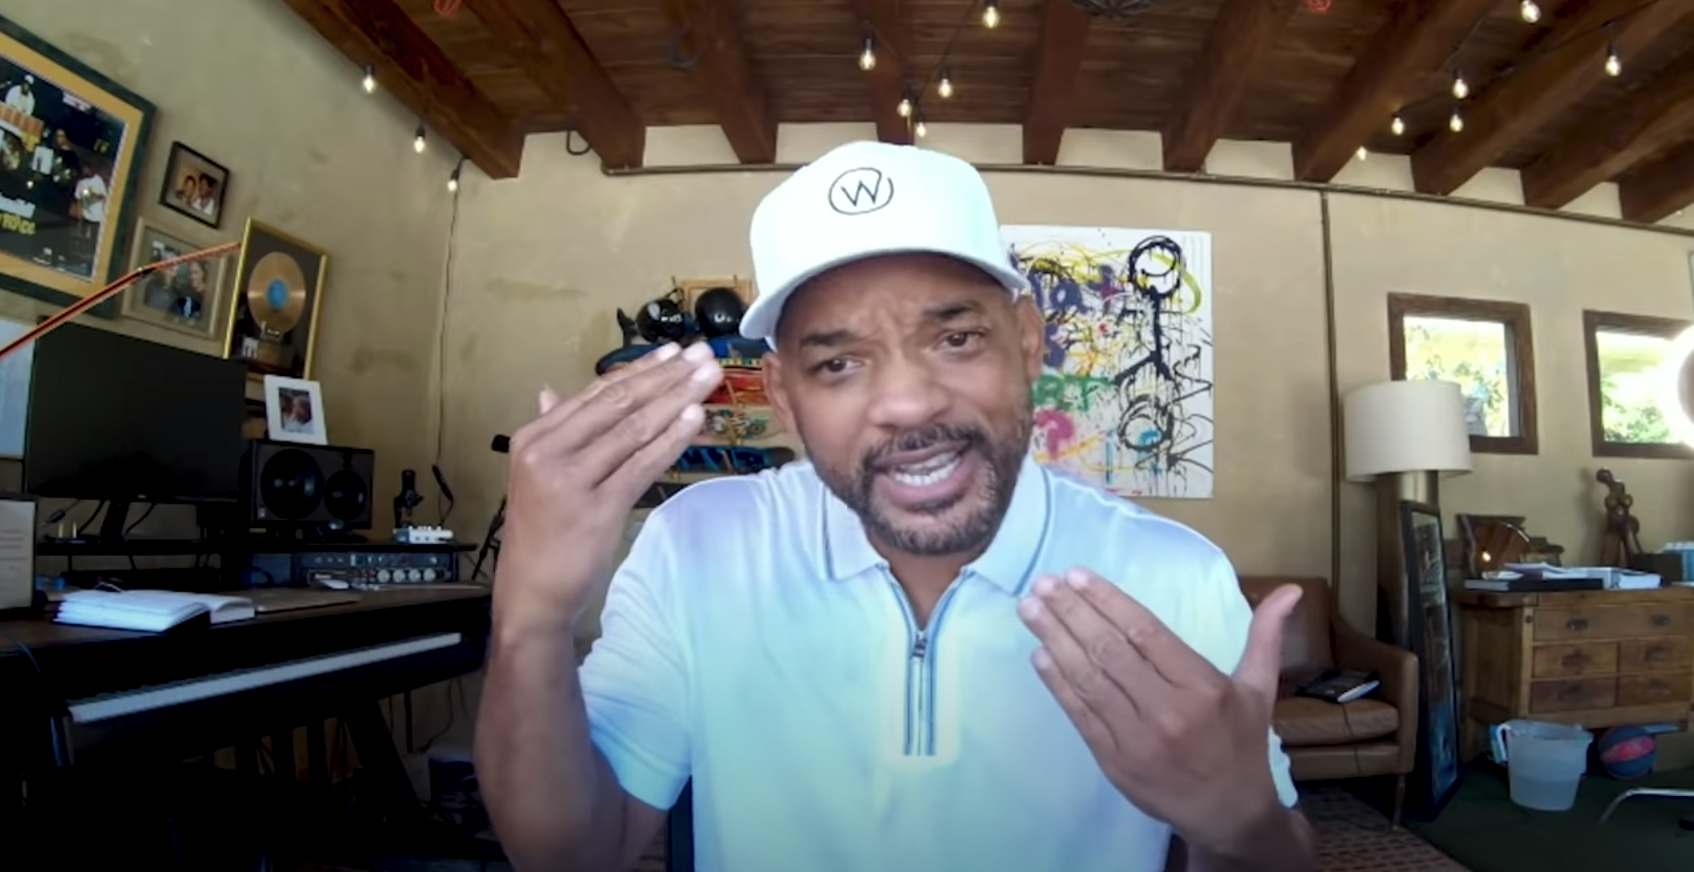 Will Smith makes a hand gesture to show his confusion about police brutality